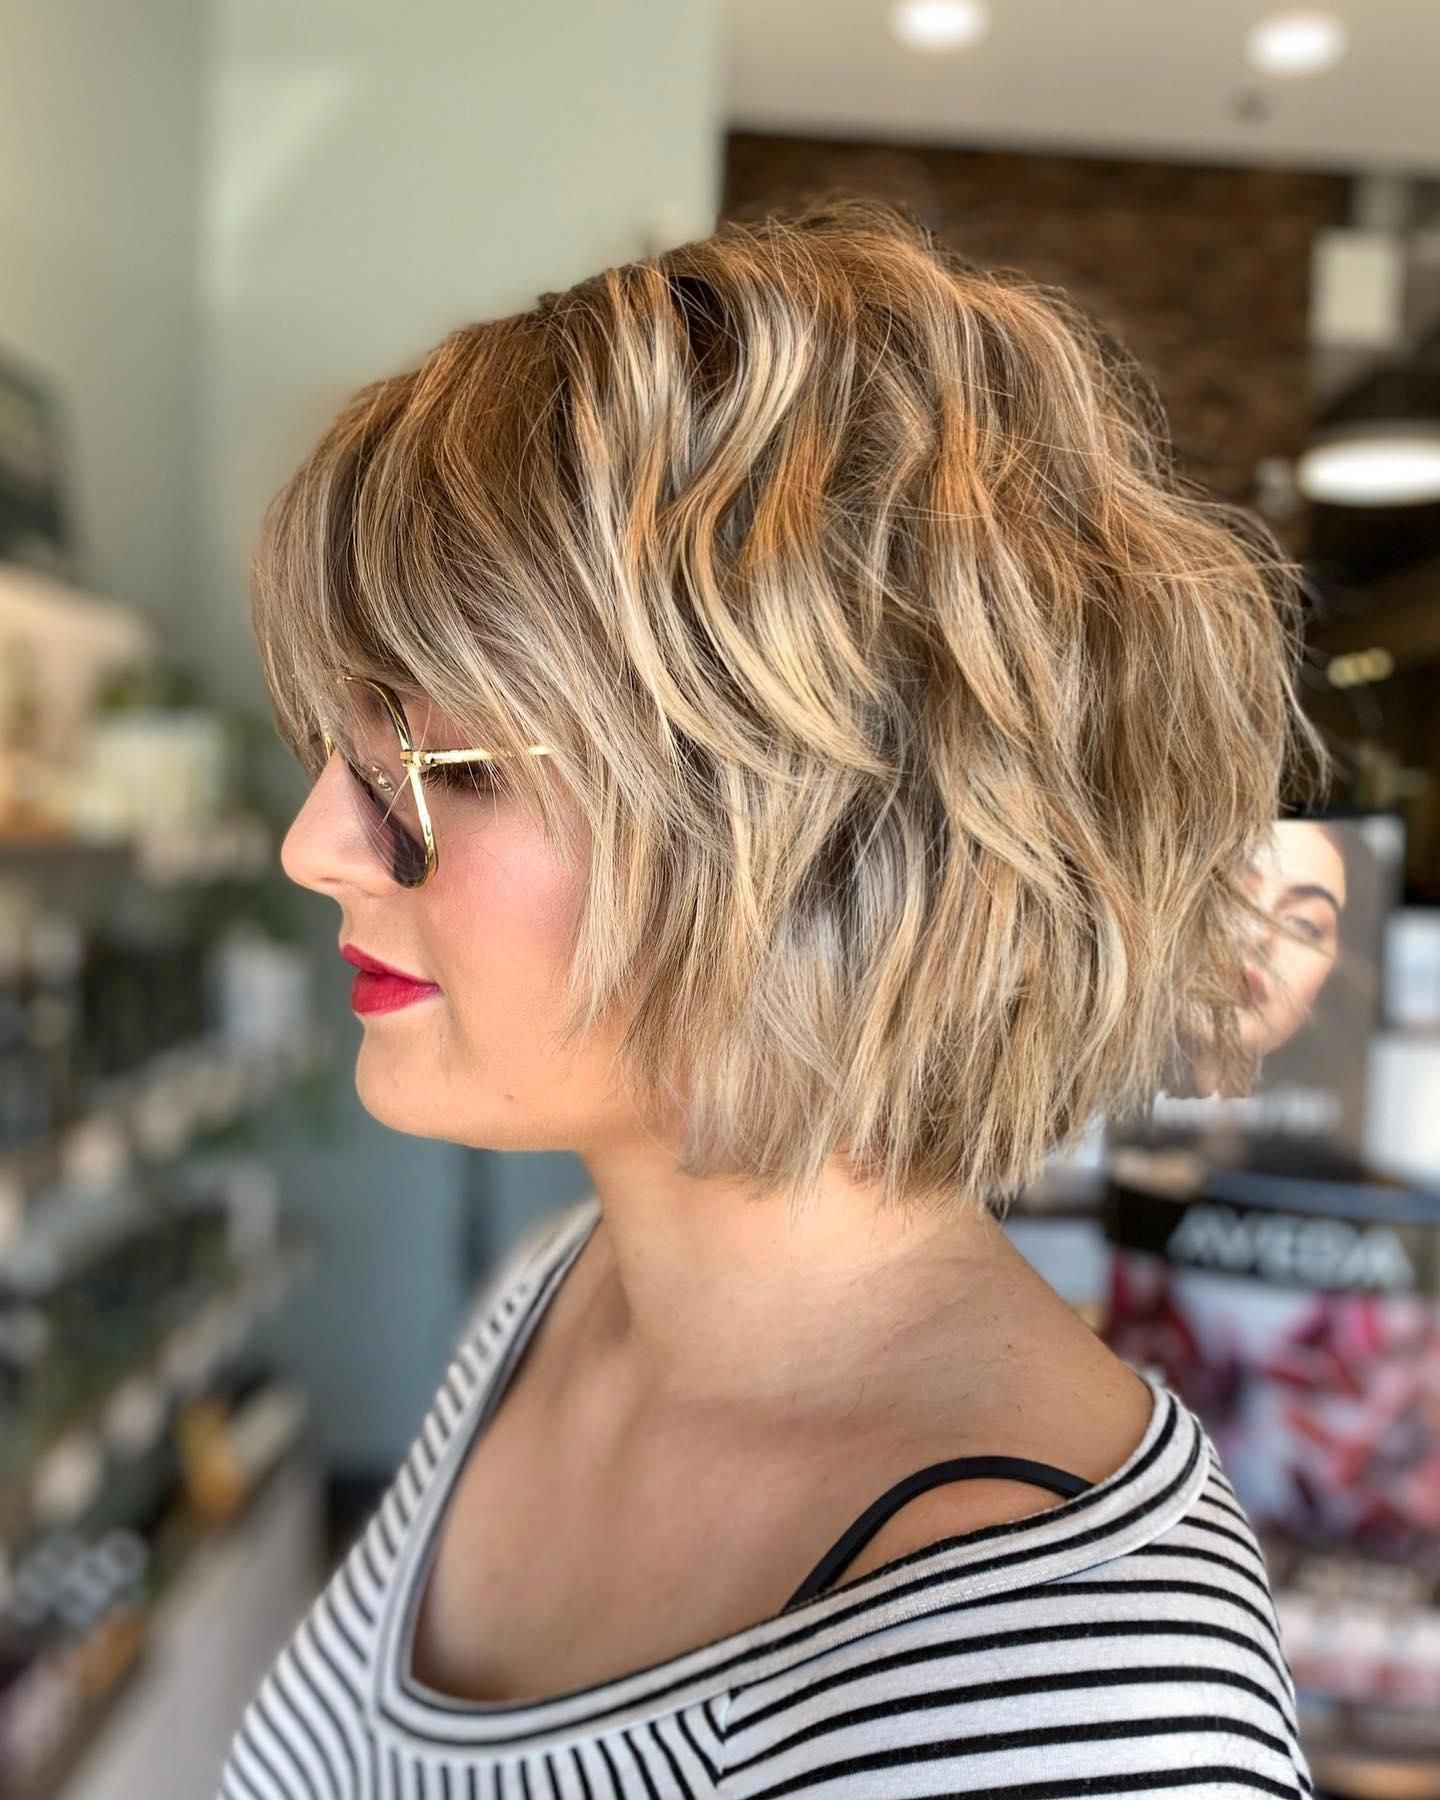 Pin On Summer Hairstyles